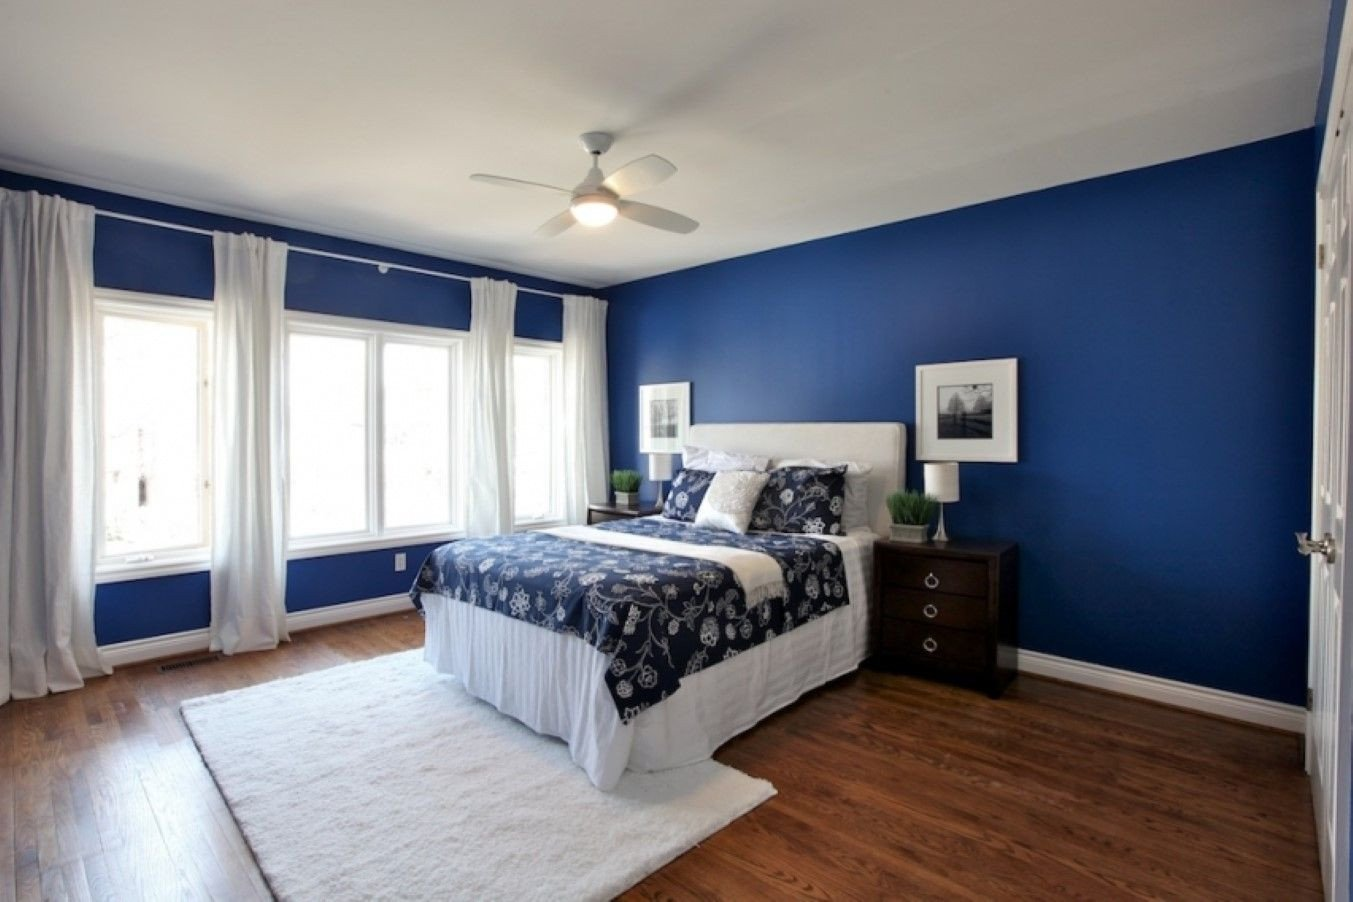 Navy Blue and Yellow Bedroom Elegant Image Result for Navy Blue and White Boys Room